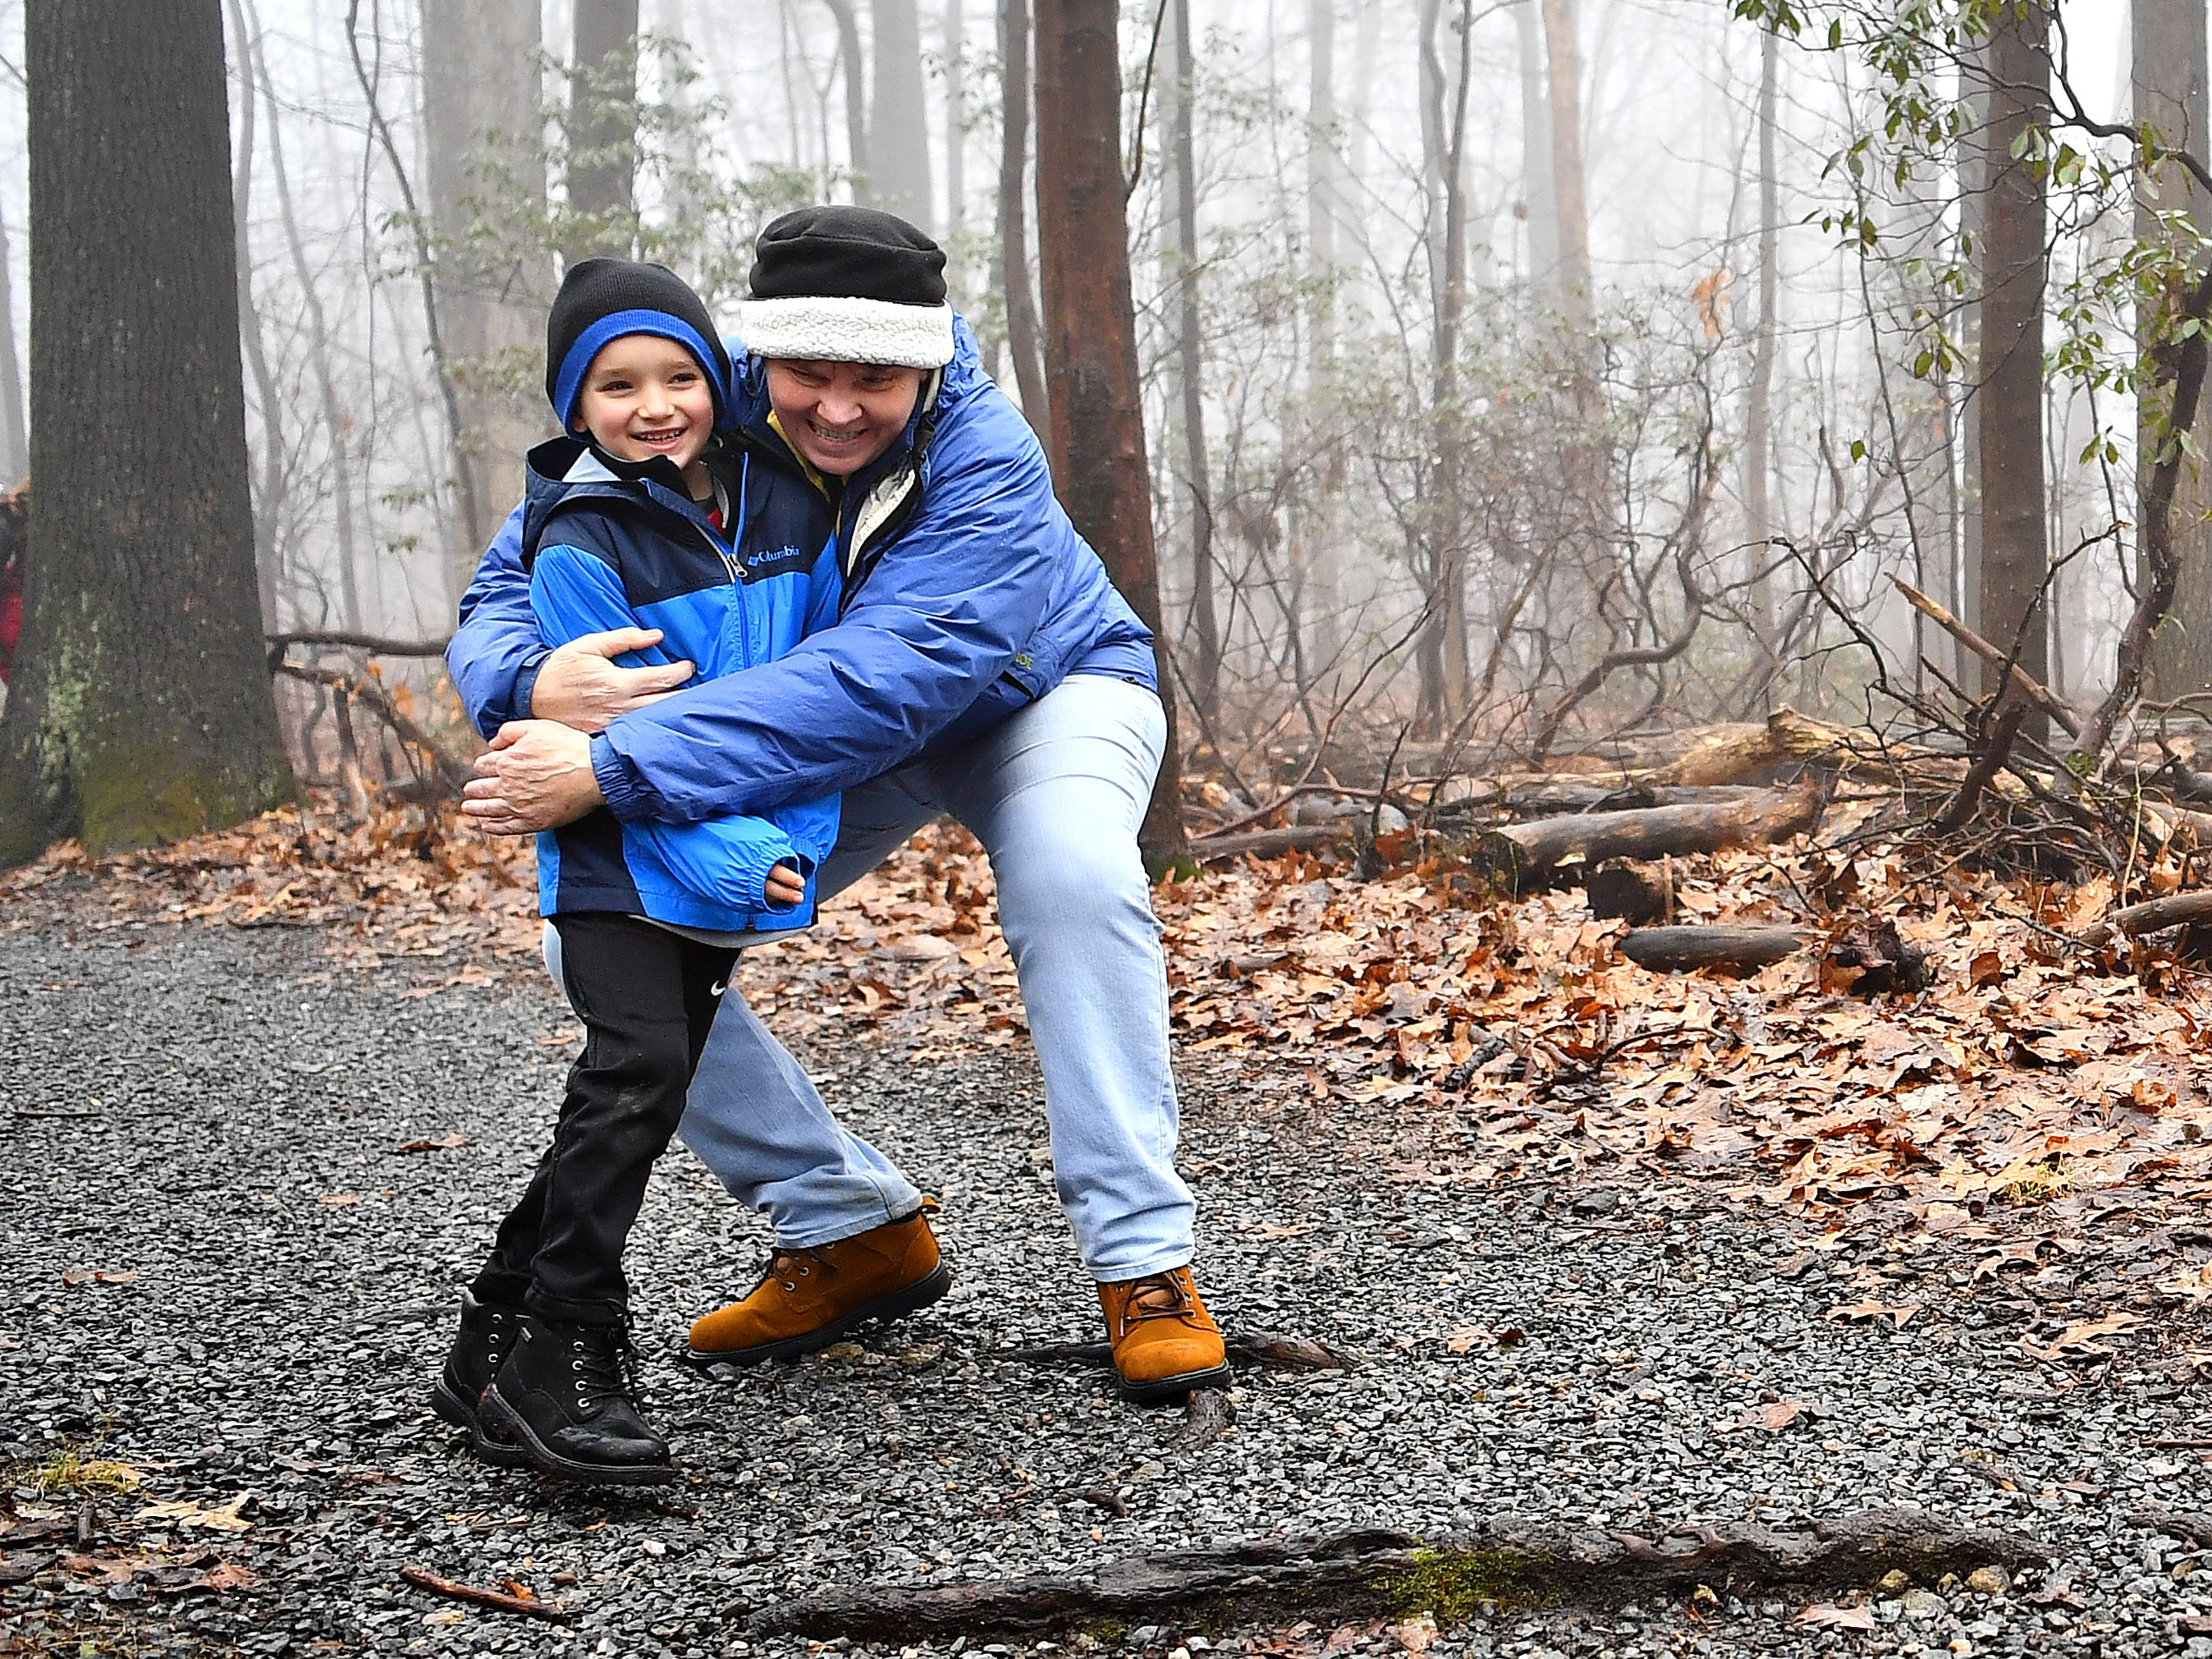 Tanya Merchant, back left, of East Manchester Township, embraces her great-nephew Mason Zercher, 6, during a Marshmallow Hike led by York County Parks Naturalist Kelsey Frey at Rocky Ridge Park in Springettsbury Township, Friday, Dec. 28, 2018. Dawn J. Sagert photo